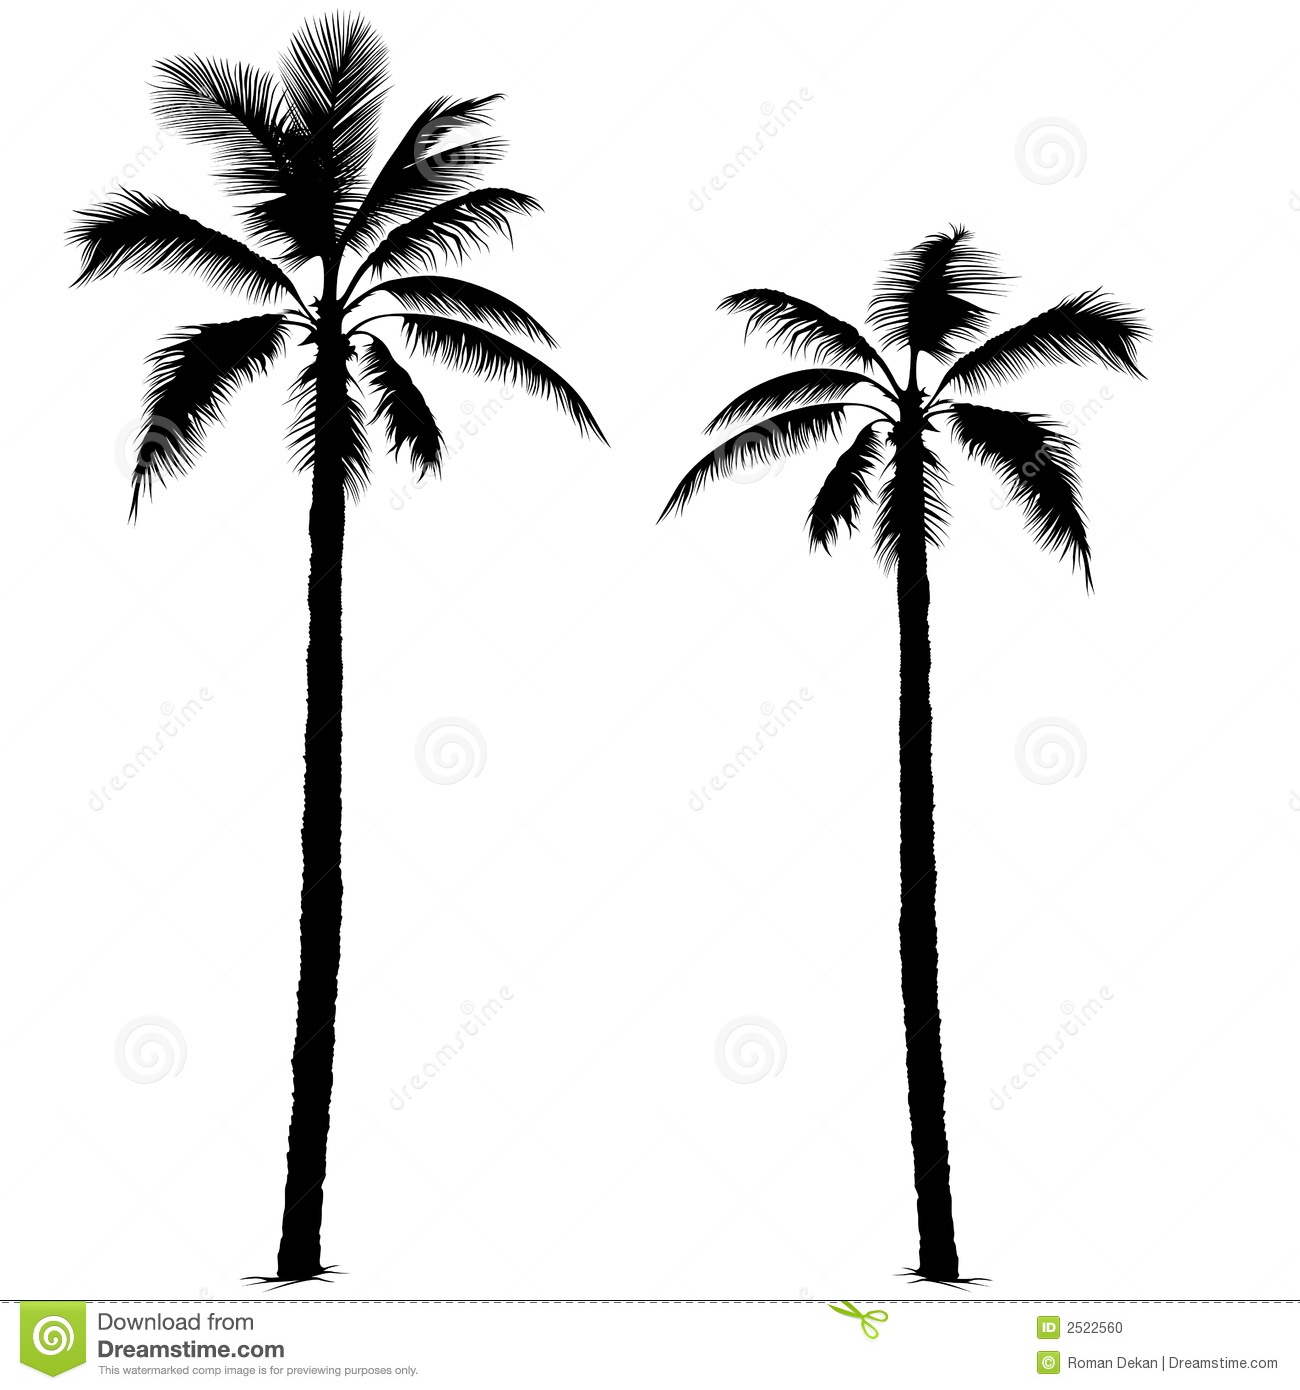 Palm tree silhouette 1 - Highly detailed black silhouette.